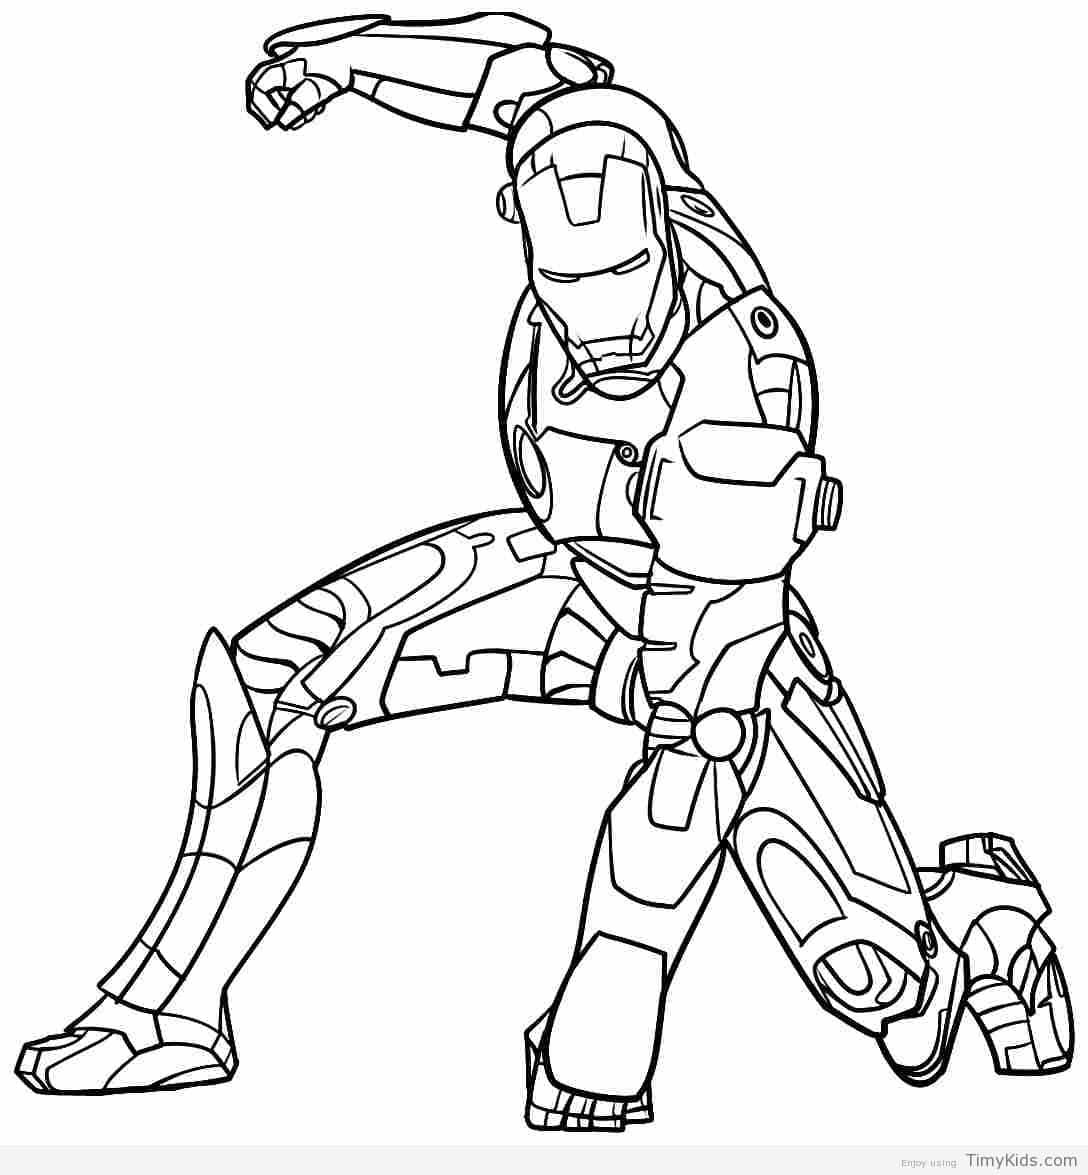 ironman coloring sheets free printable iron man coloring pages for kids ironman sheets coloring 1 1